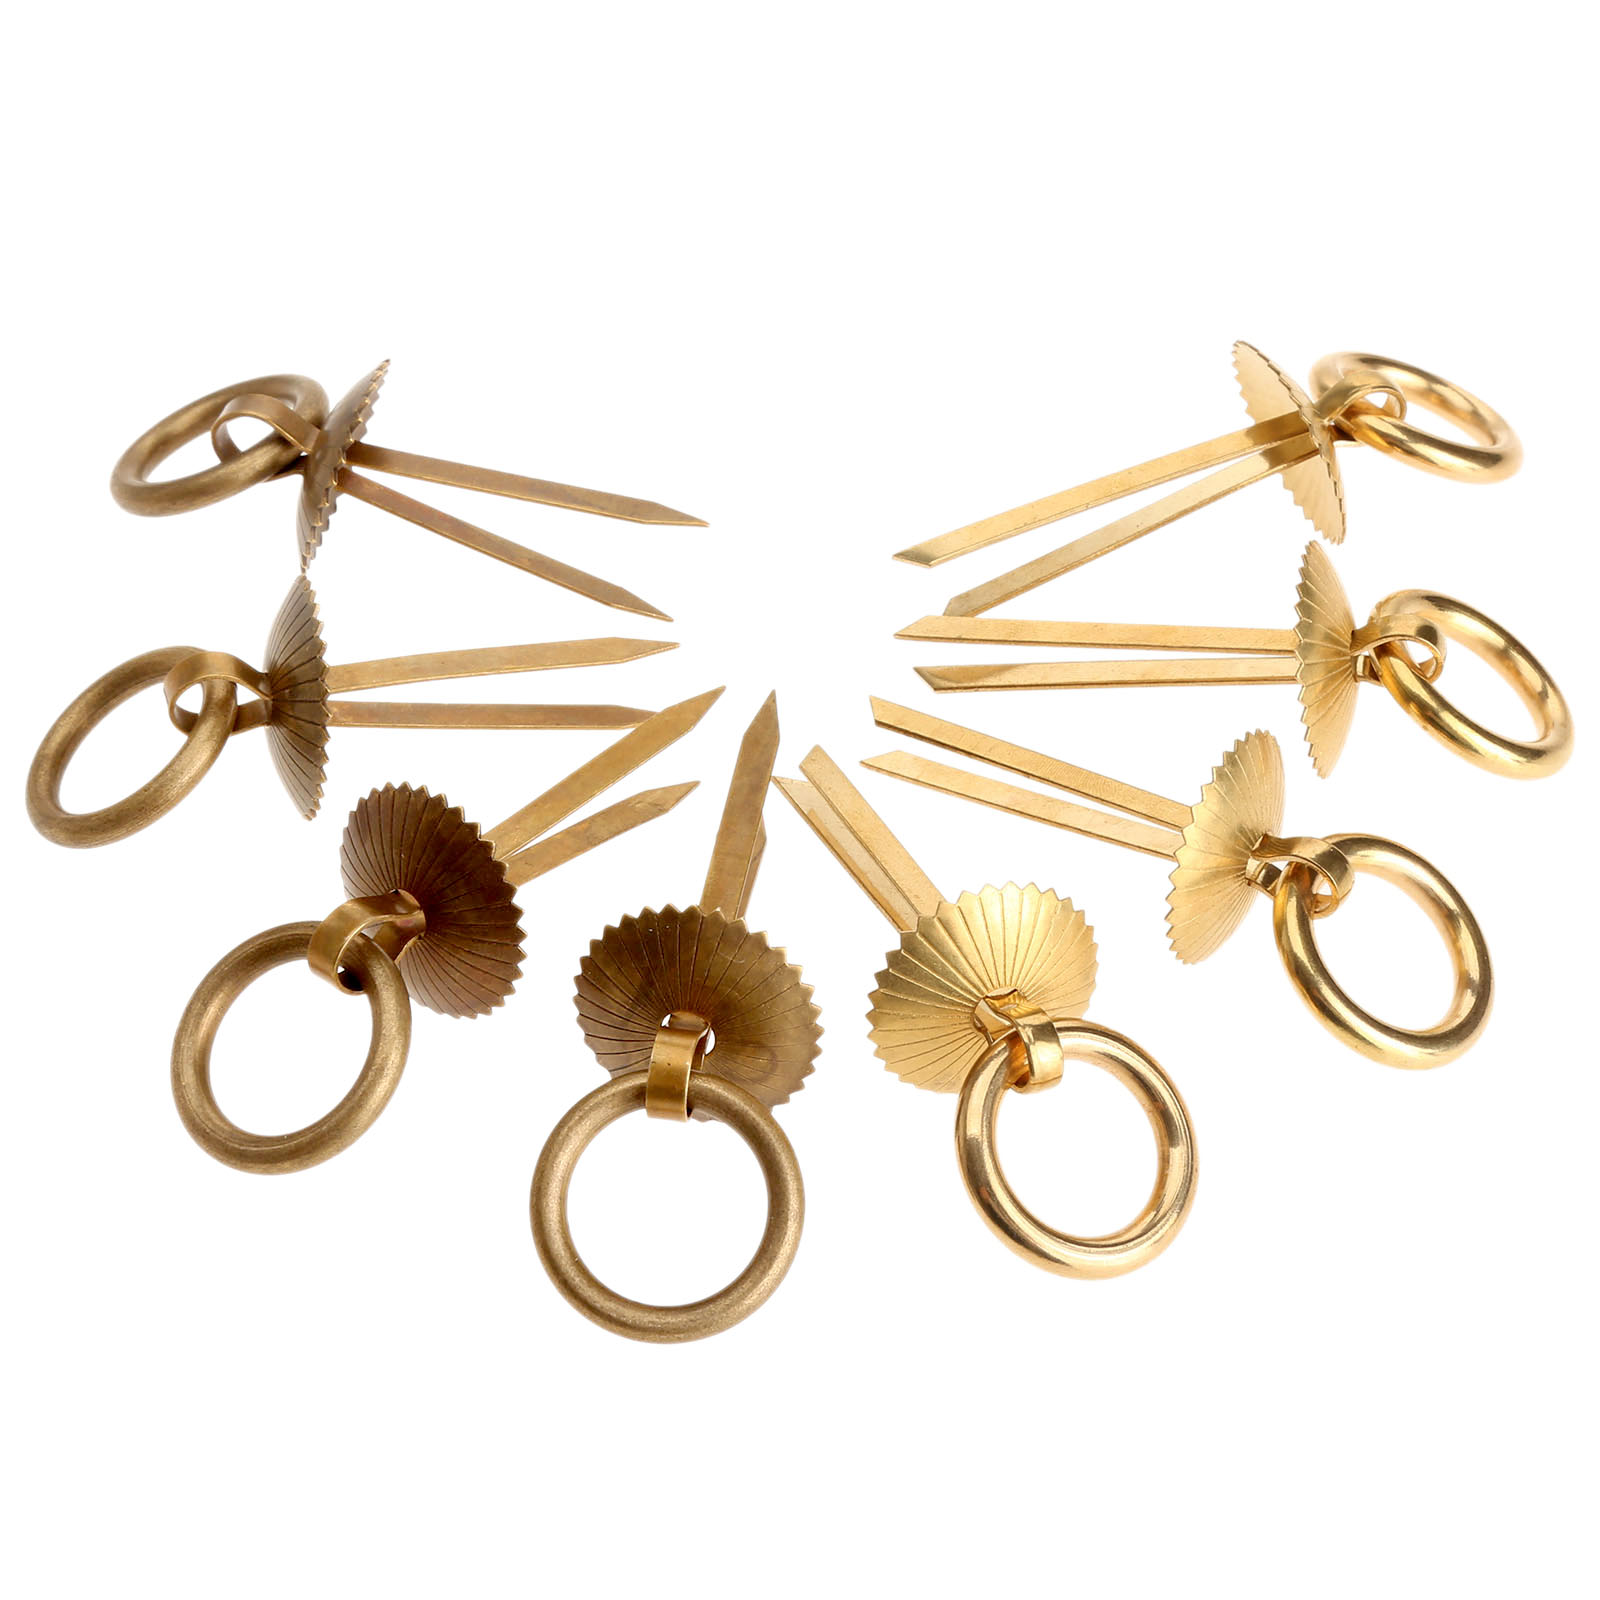 4Pcs Brass Drawer Ring Pulls Handles Antique Copper Cupboard Handle Pull  Wardrobe Drawer Cabinet Knobs And Handles For Furniture